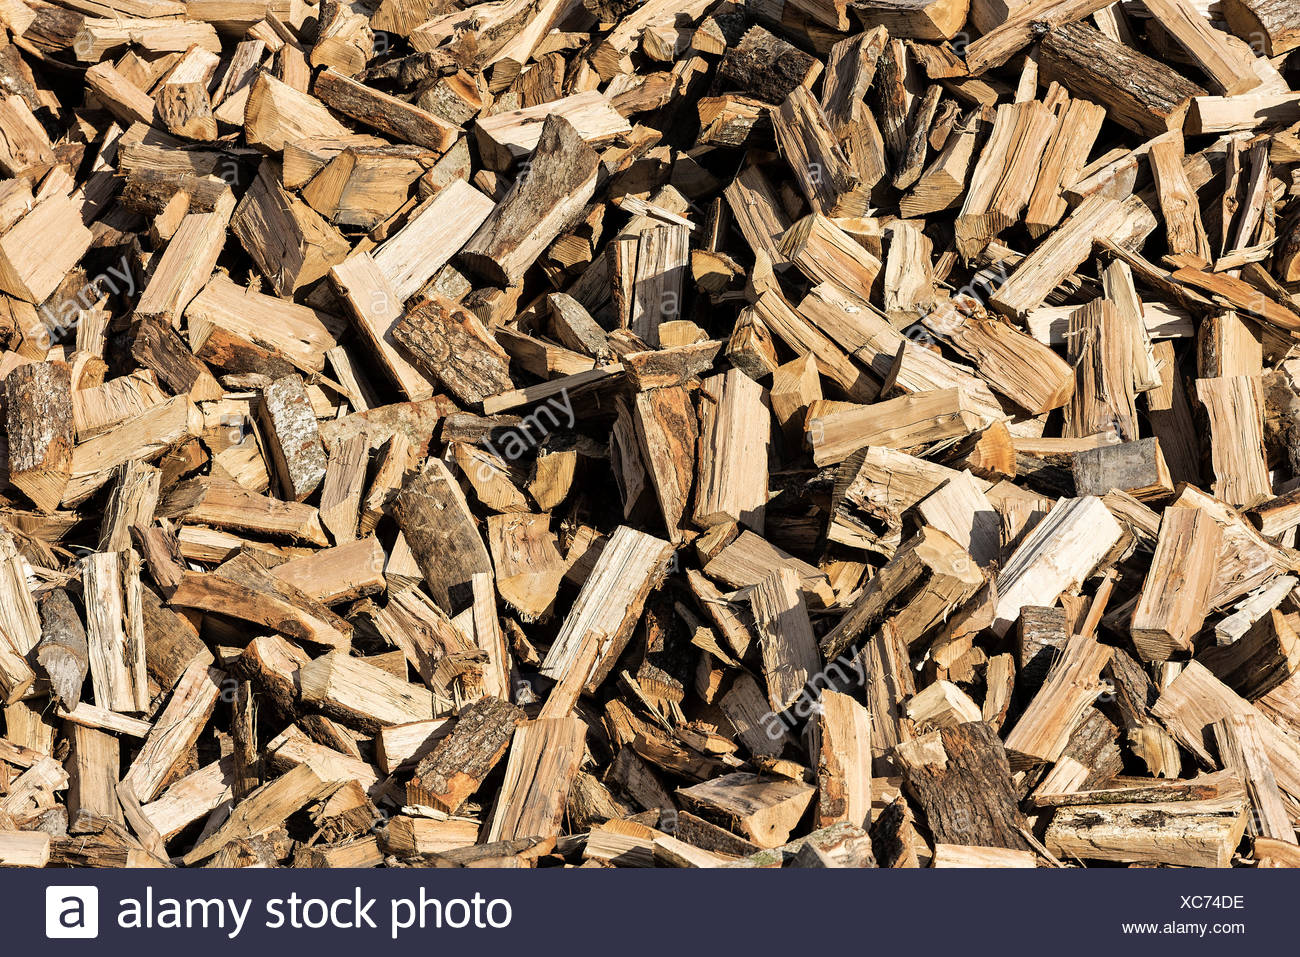 Large stack of split firewood - Stock Image